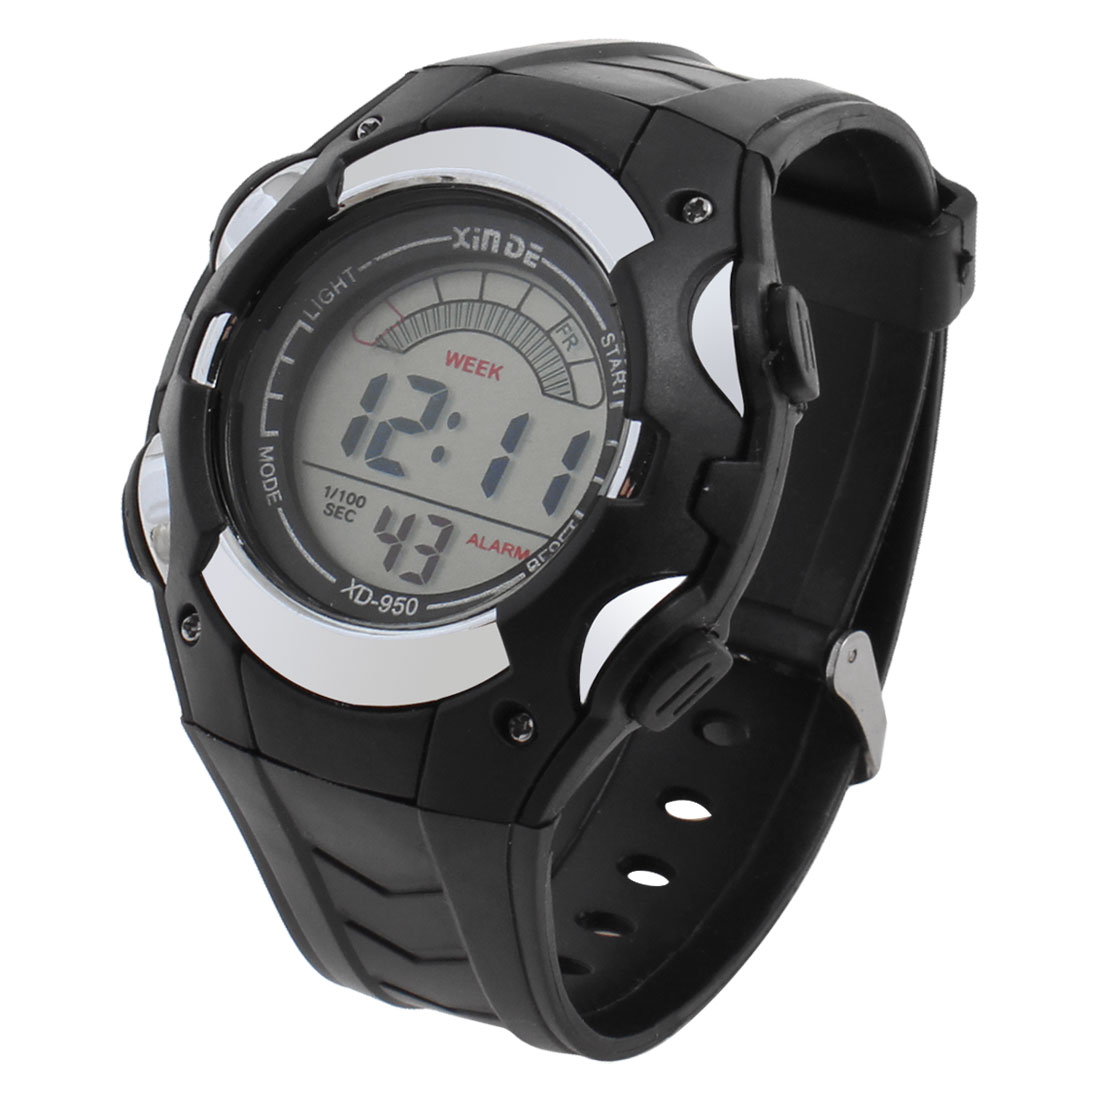 Man Plastic Band Multifunctional Sport Running Alarm Cold Light Watch Black Gray